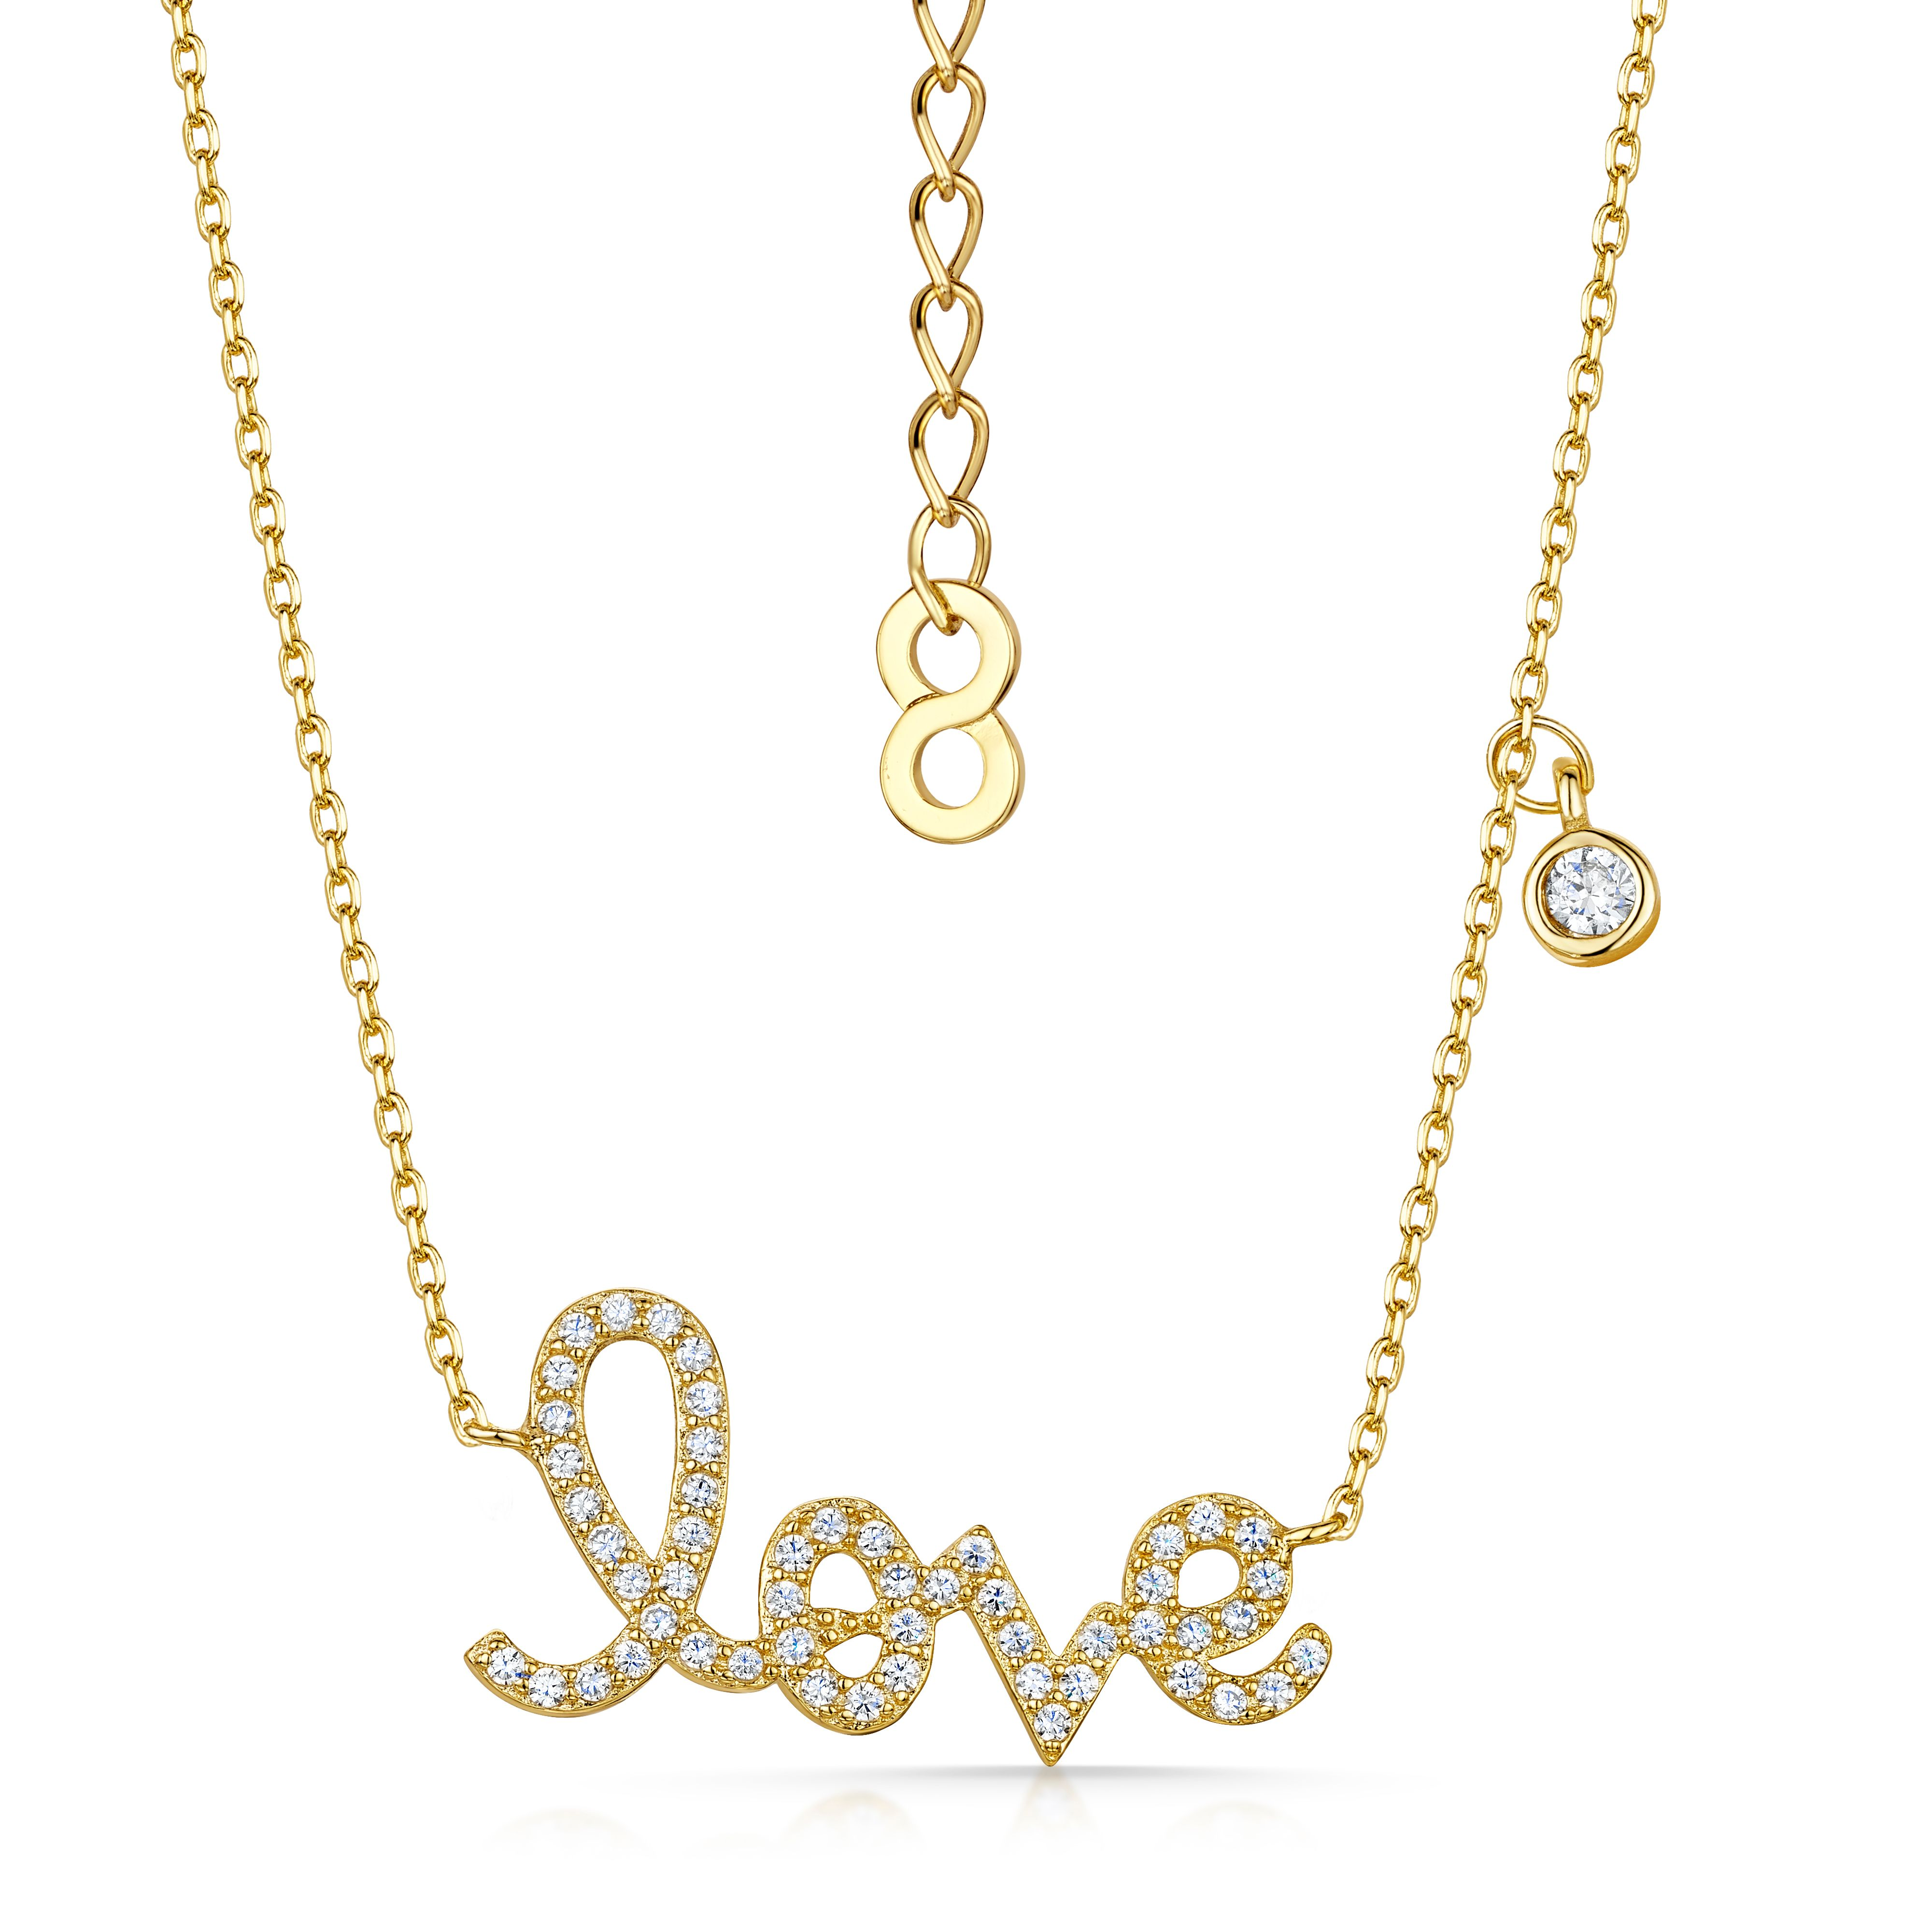 essays story necklace The necklace study guide contains a biography of guy de maupassant, literature essays, quiz questions, major themes, characters, and a full summary and analysis.